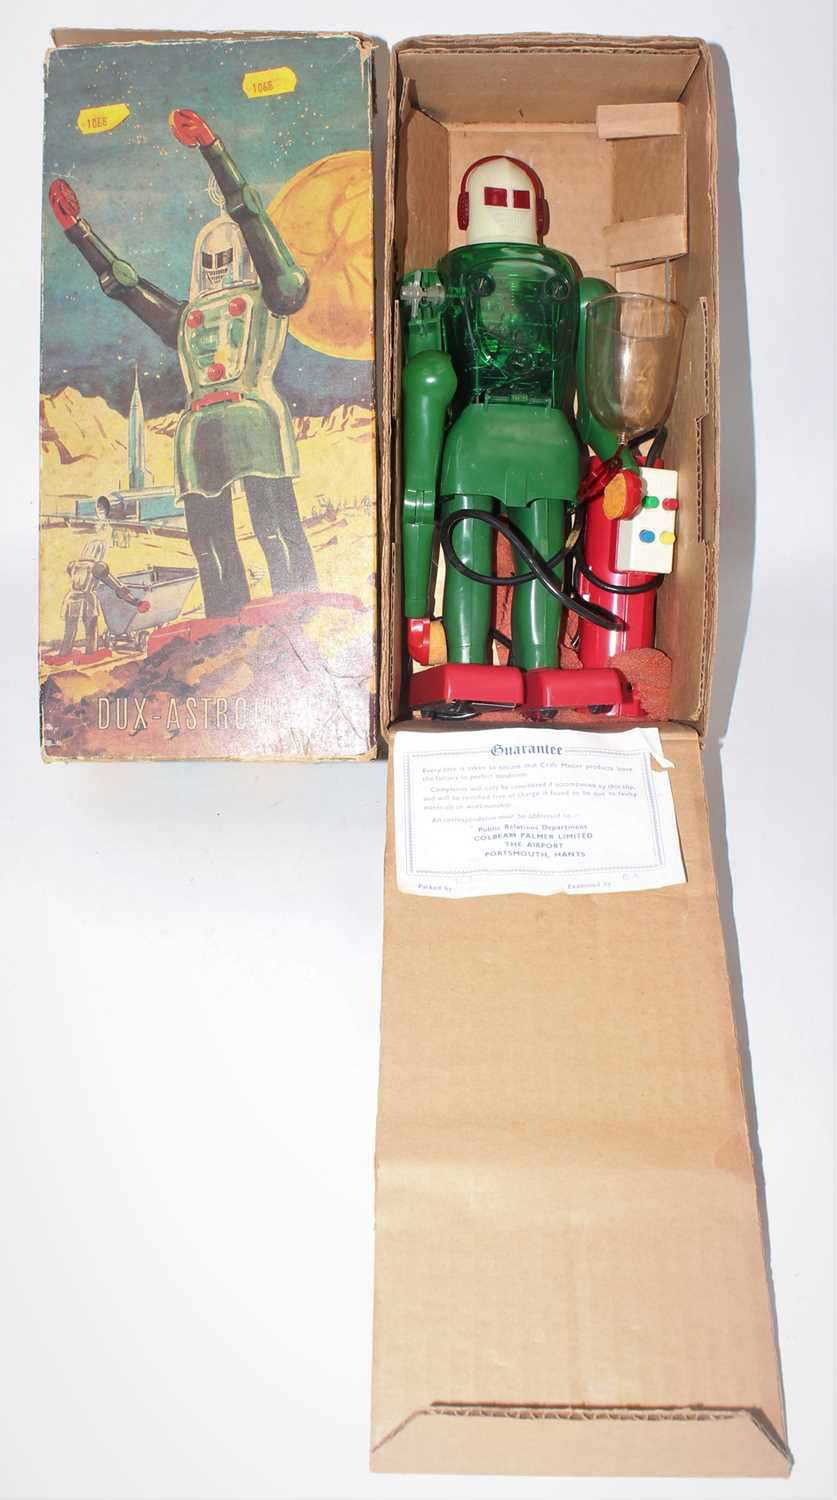 A Dux (Made in West Germany) No.150 Astro Man Robot, comprising of a green body with red feet and